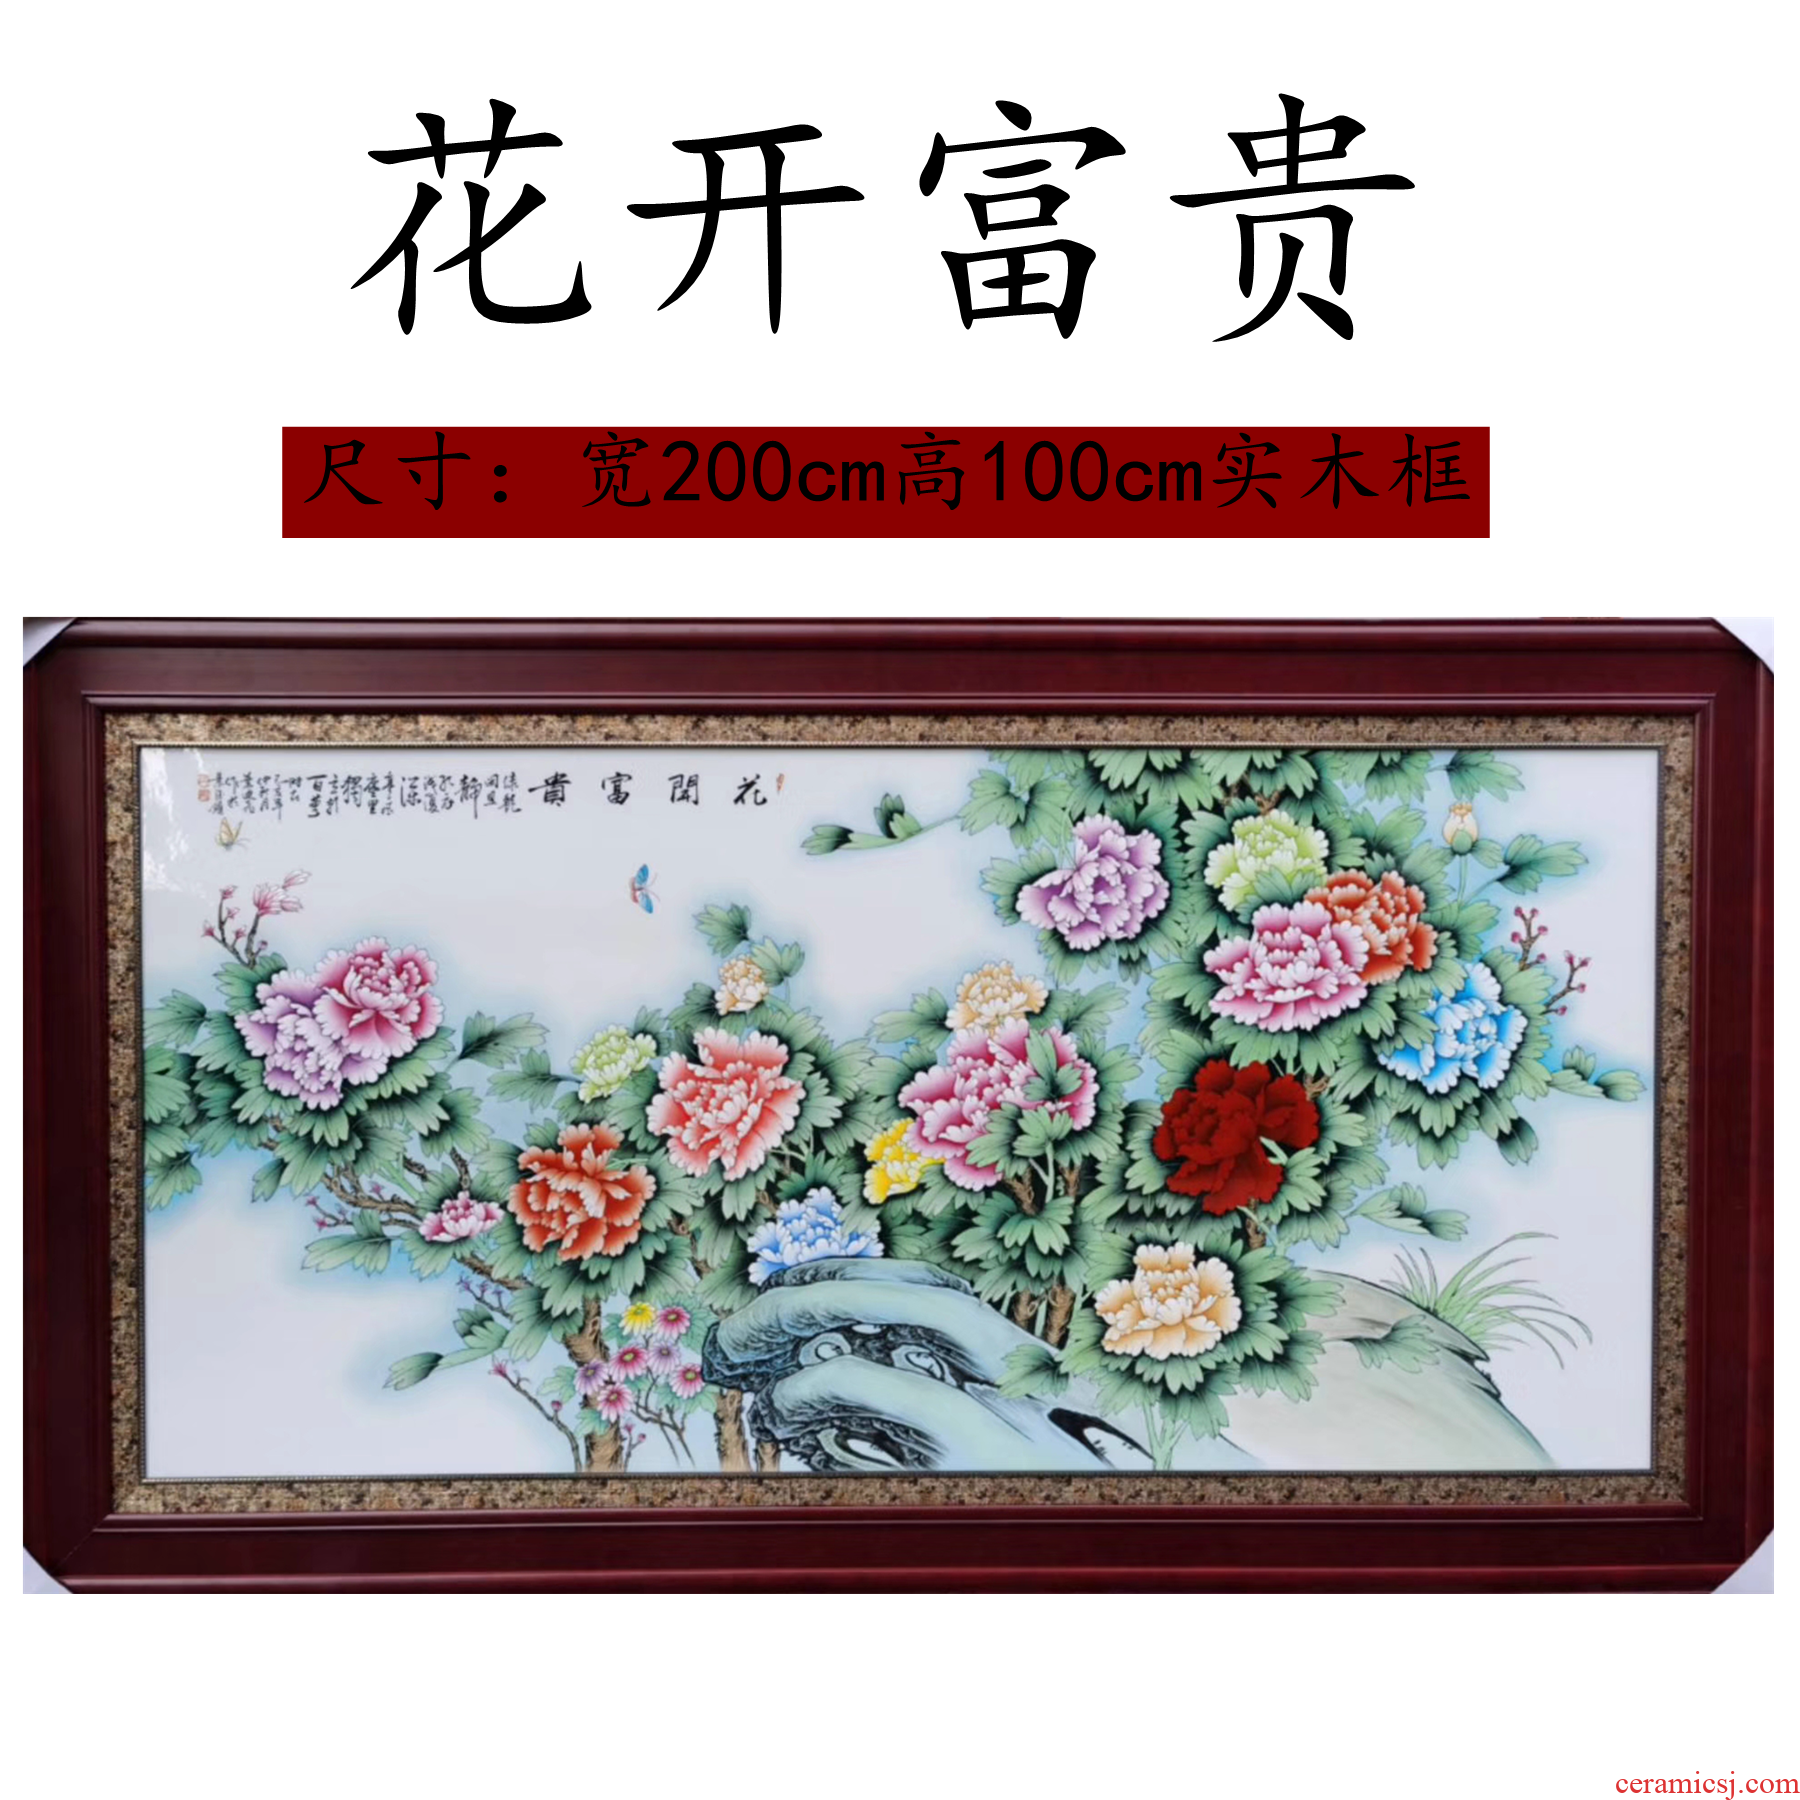 Ceramic mural porcelain plate painting decorative calligraphy and painting famous blooming flowers, hang a picture to classic Chinese style living room furnishing articles